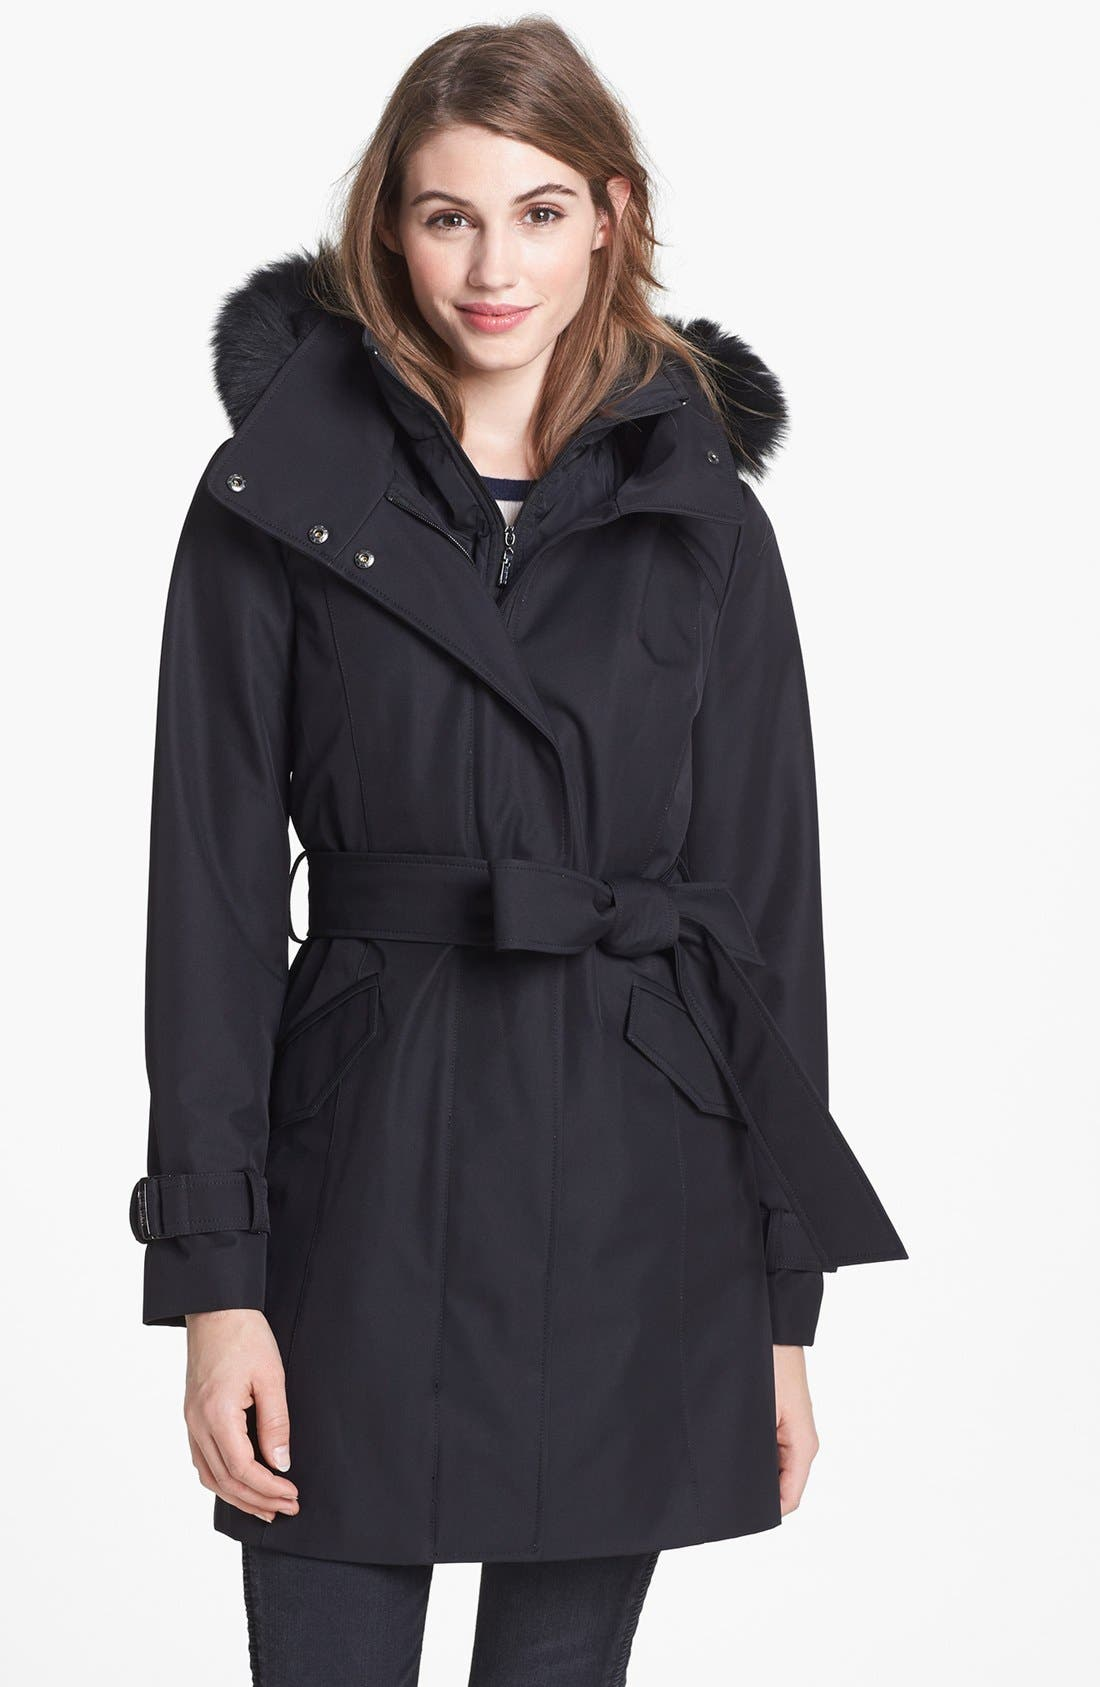 Main Image - Collection Ellen Tracy Genuine Fox Fur Trim Belted Raincoat (Nordstrom Exclusive)